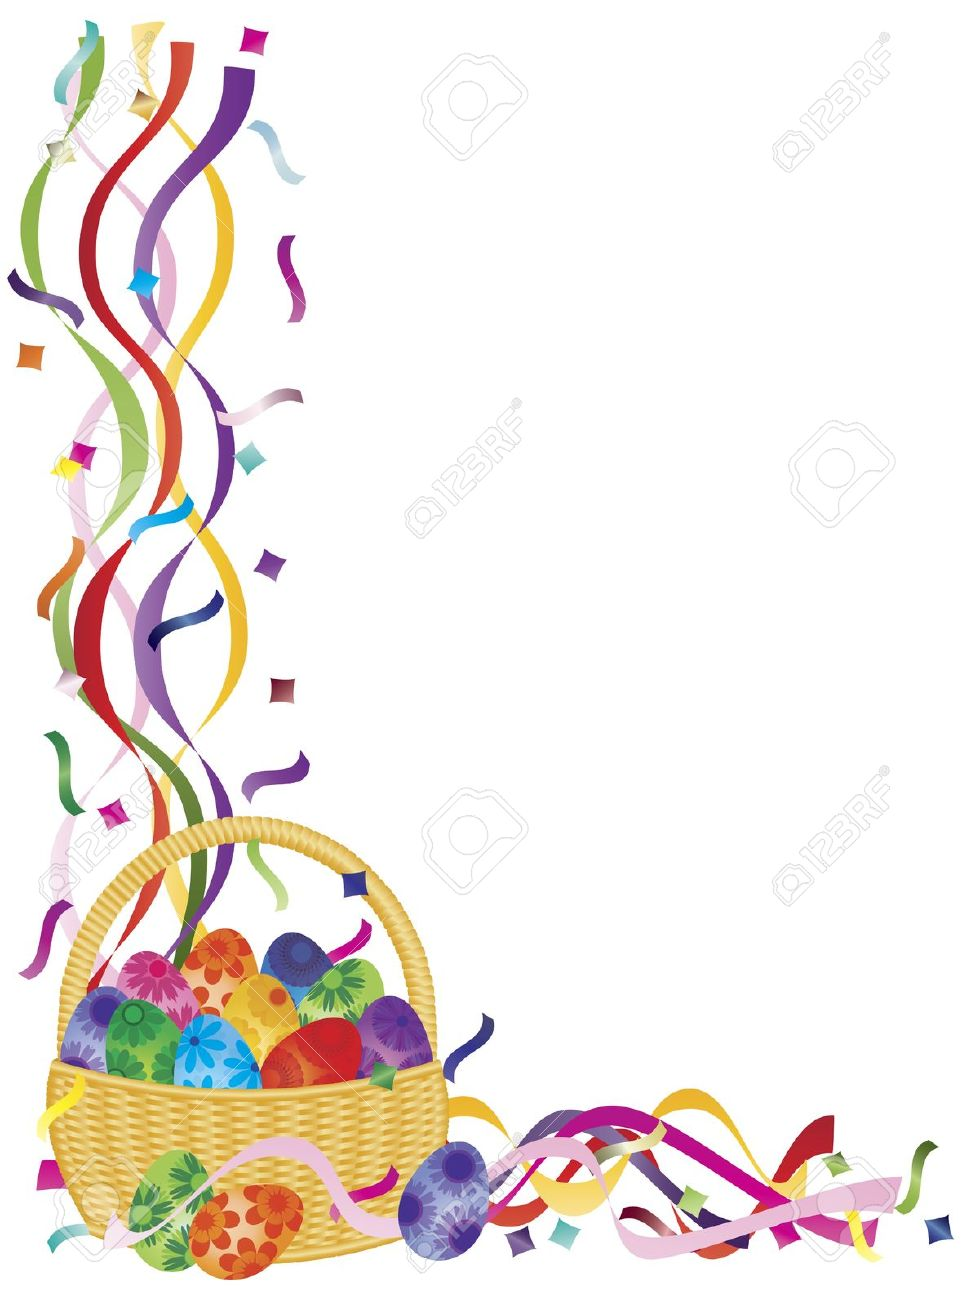 Easter Border   Free download on ClipArtMag (962 x 1300 Pixel)